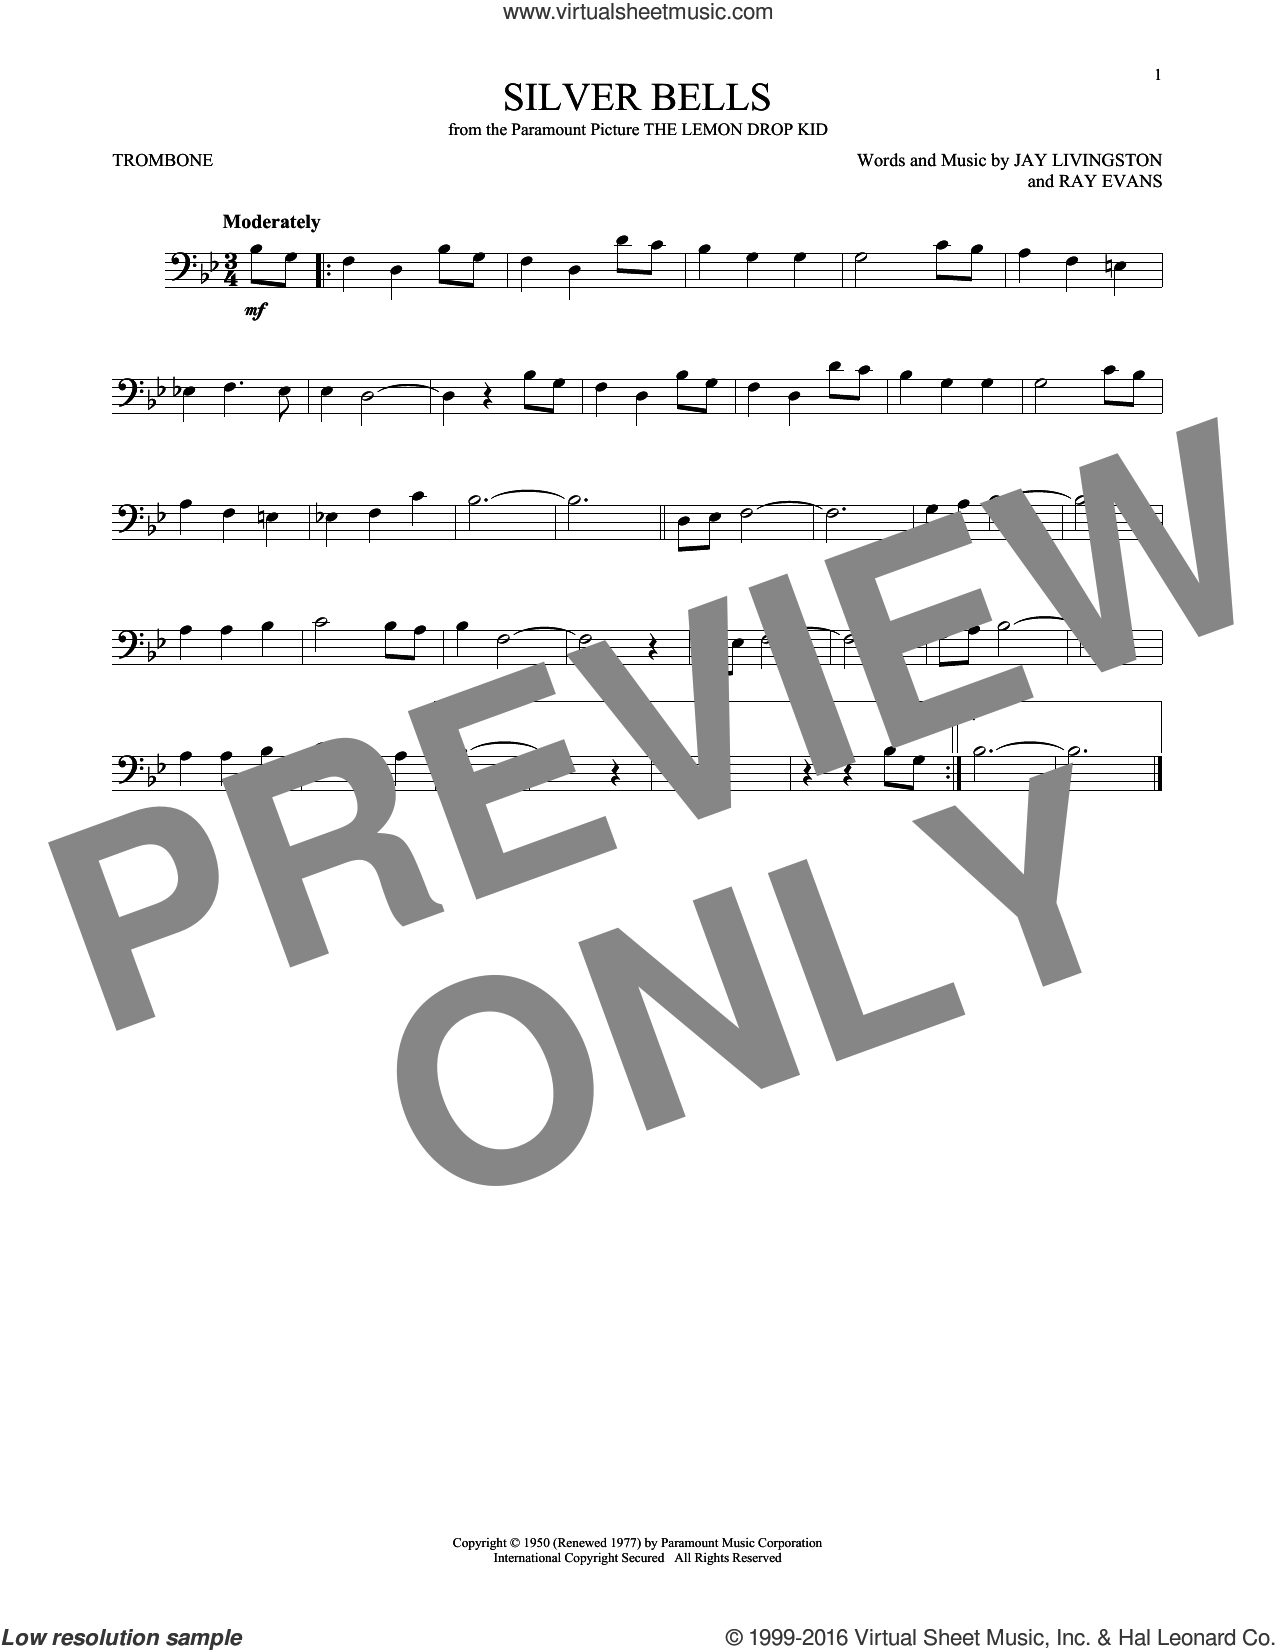 Silver Bells sheet music for trombone solo by Jay Livingston, Jay Livingston & Ray Evans and Ray Evans, intermediate skill level